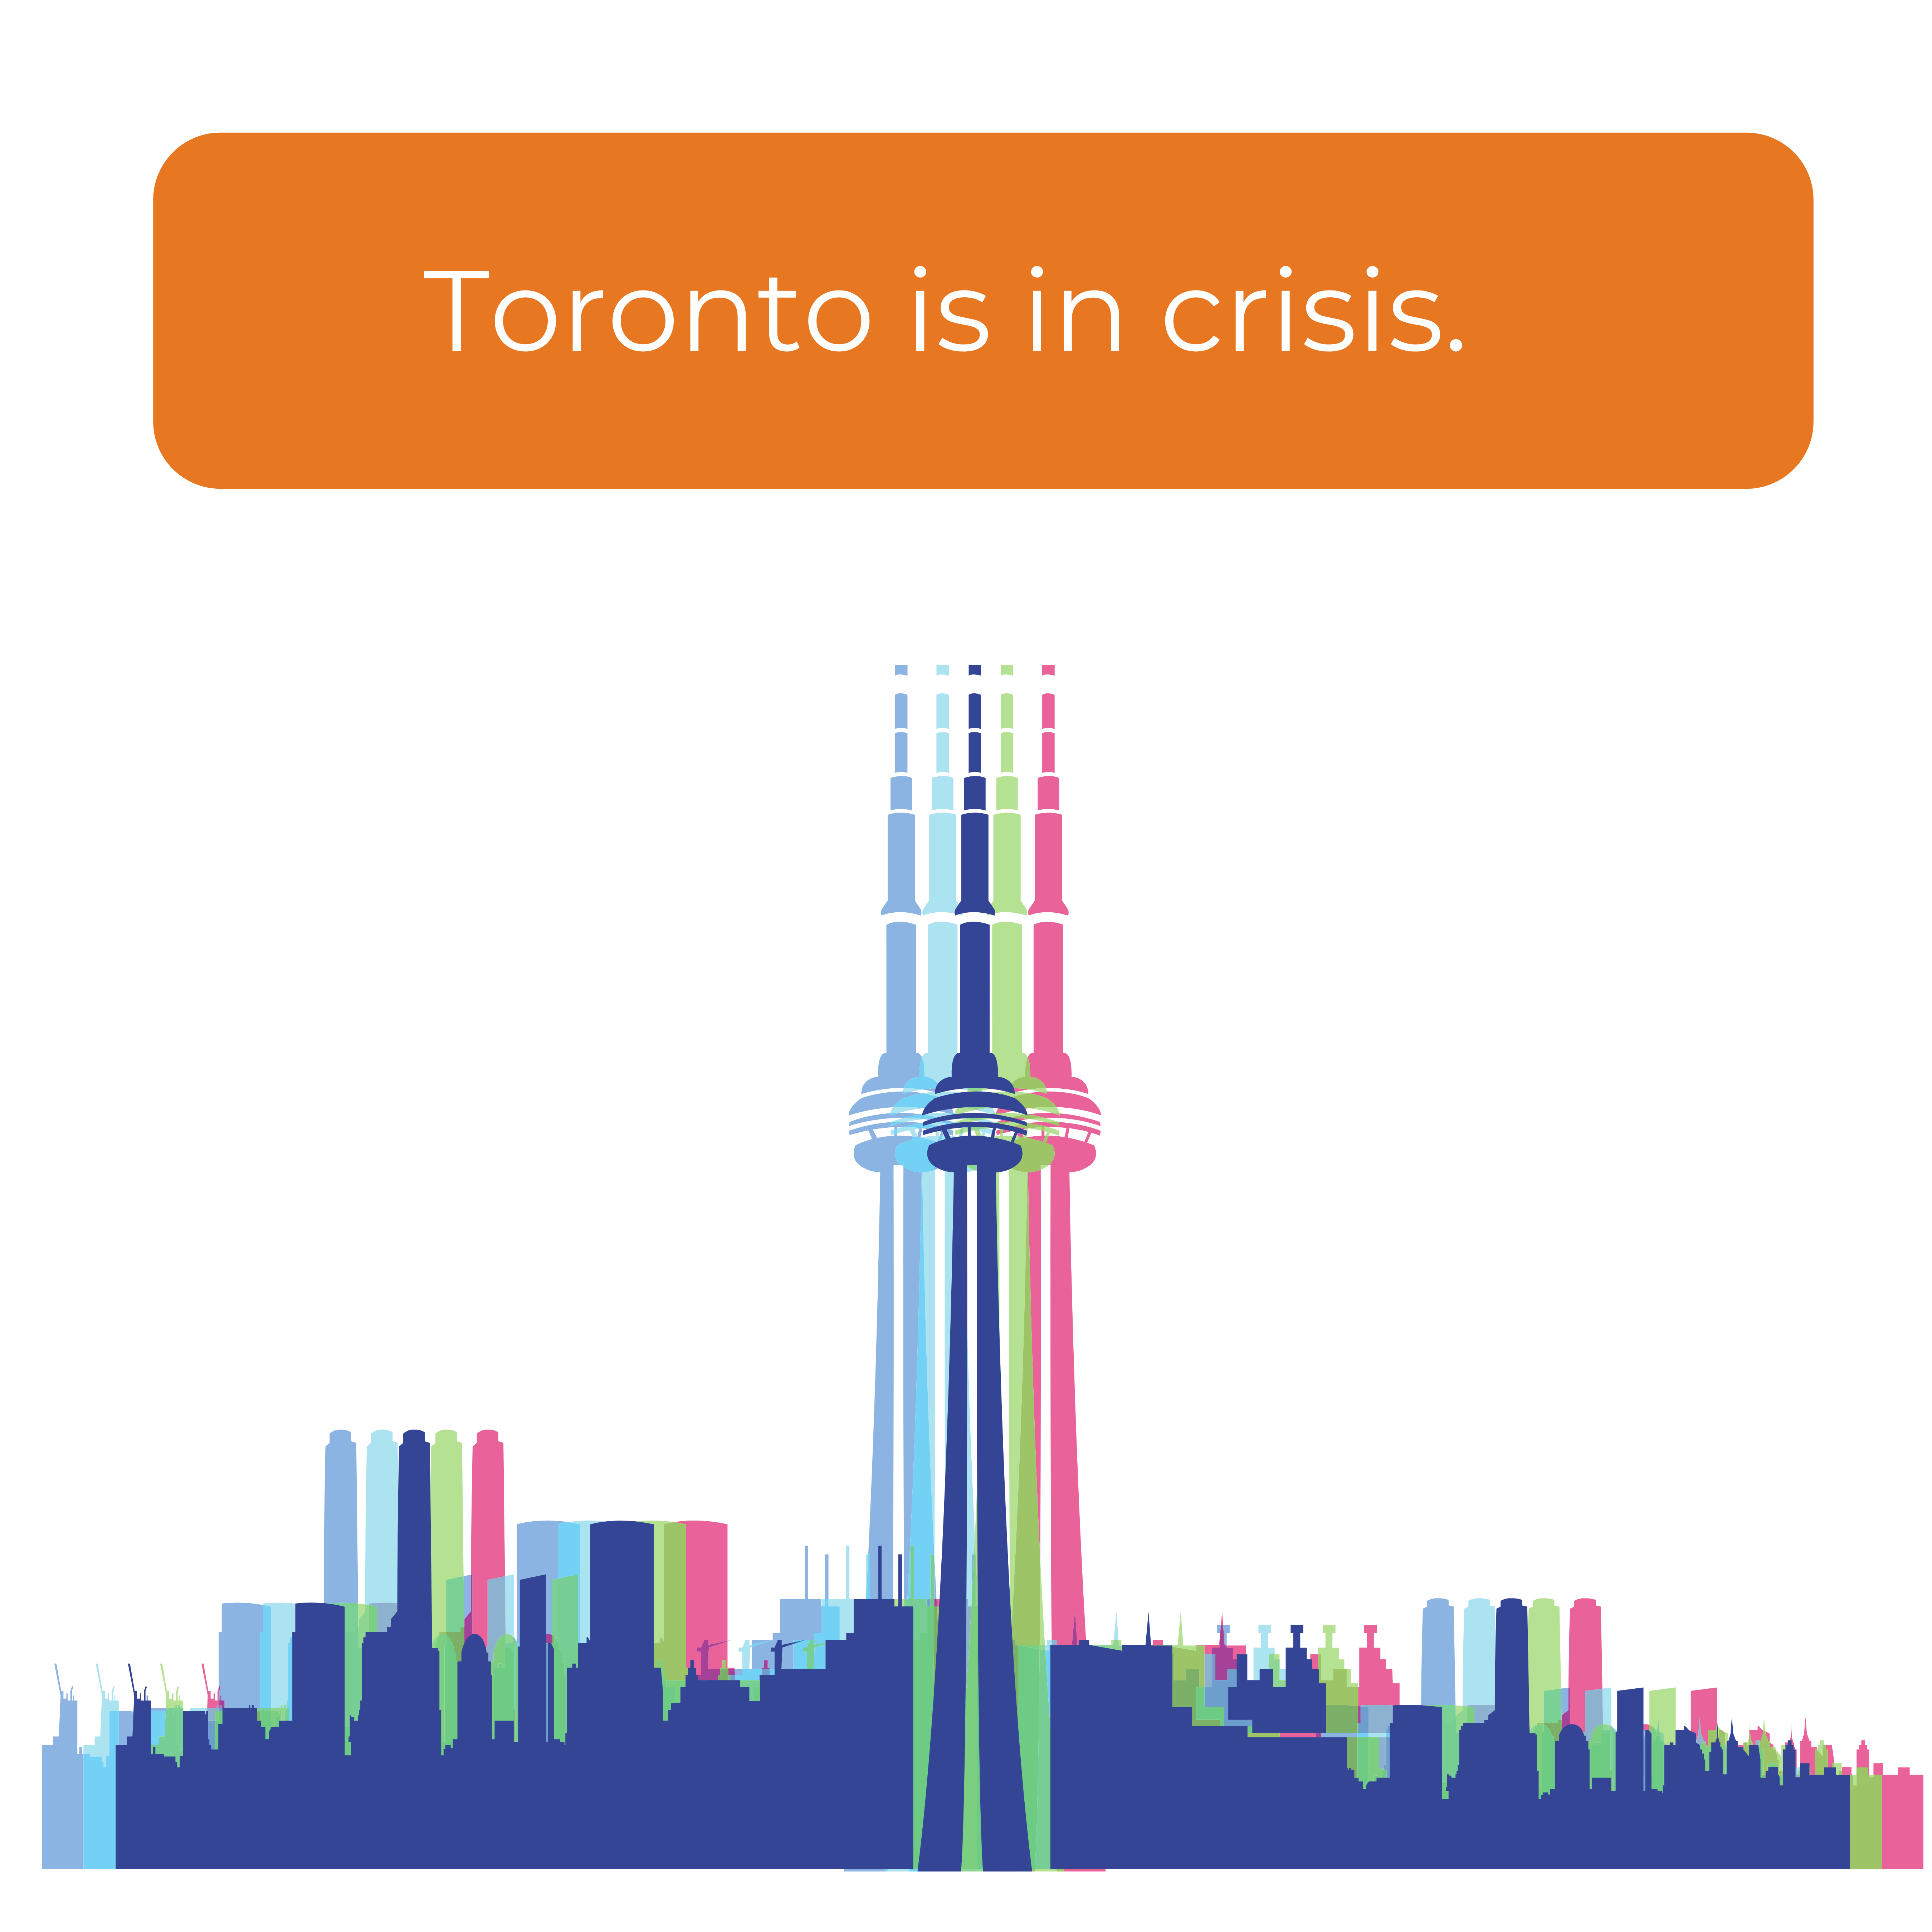 Toronto is in crisis.